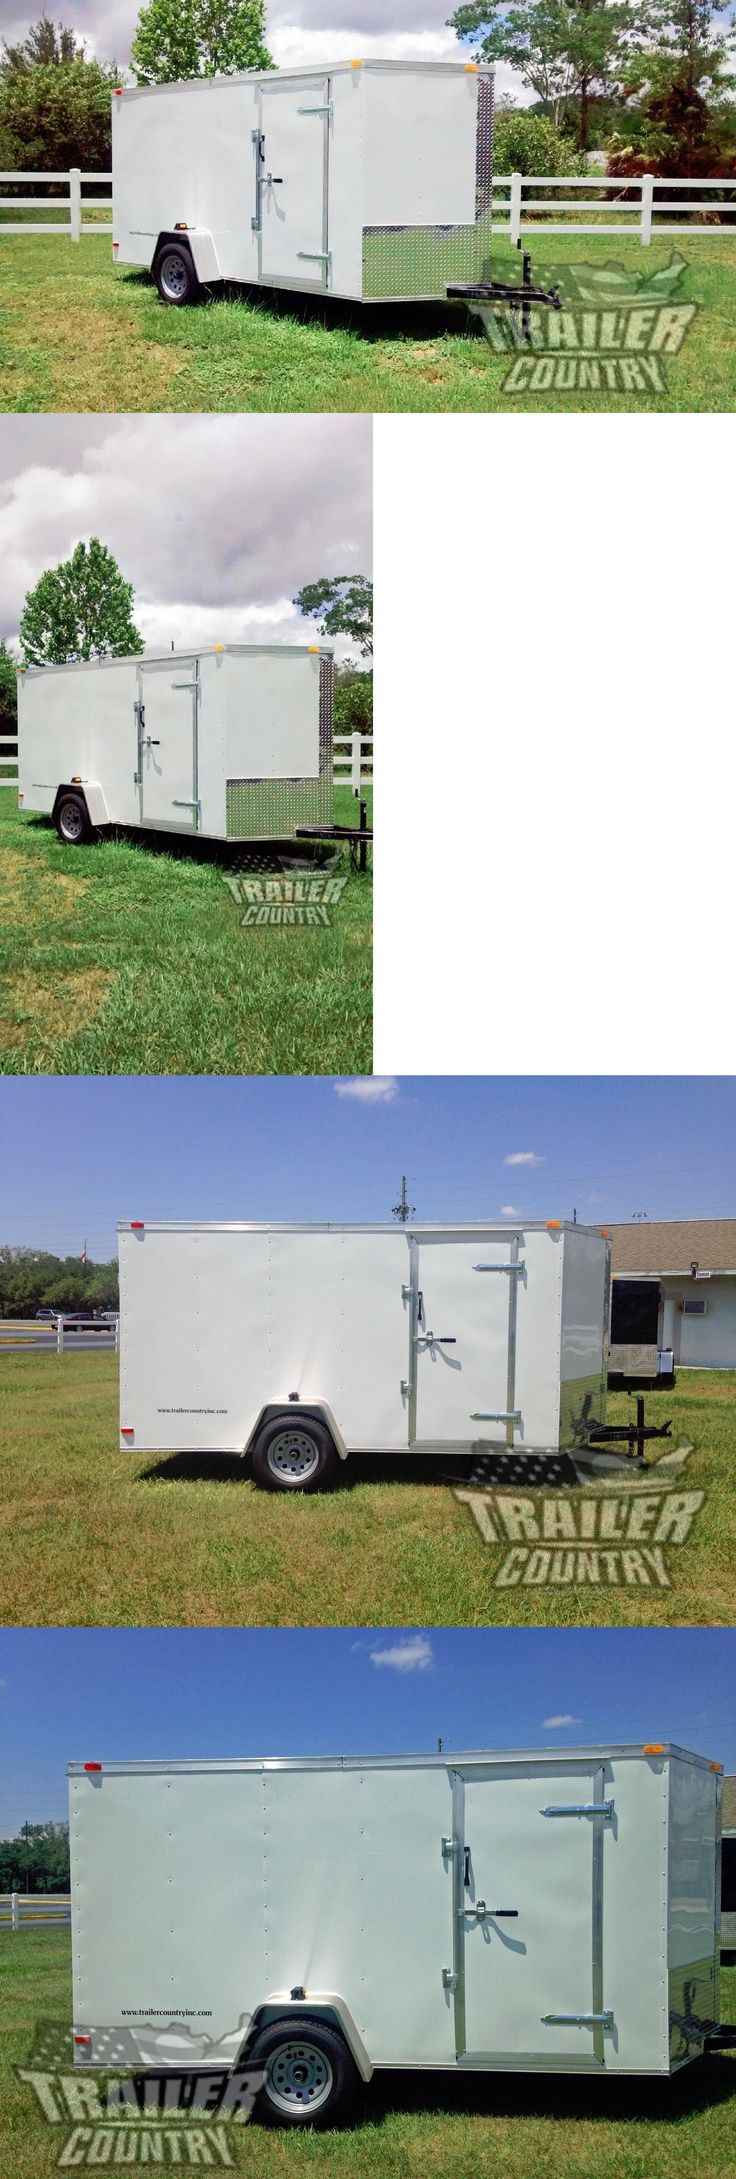 heavy equipment: New 2017 6 X 12 V-Nosed Enclosed Cargo Motorcycle Trailer W Ramp And Side Doors -> BUY IT NOW ONLY: $1775 on eBay!